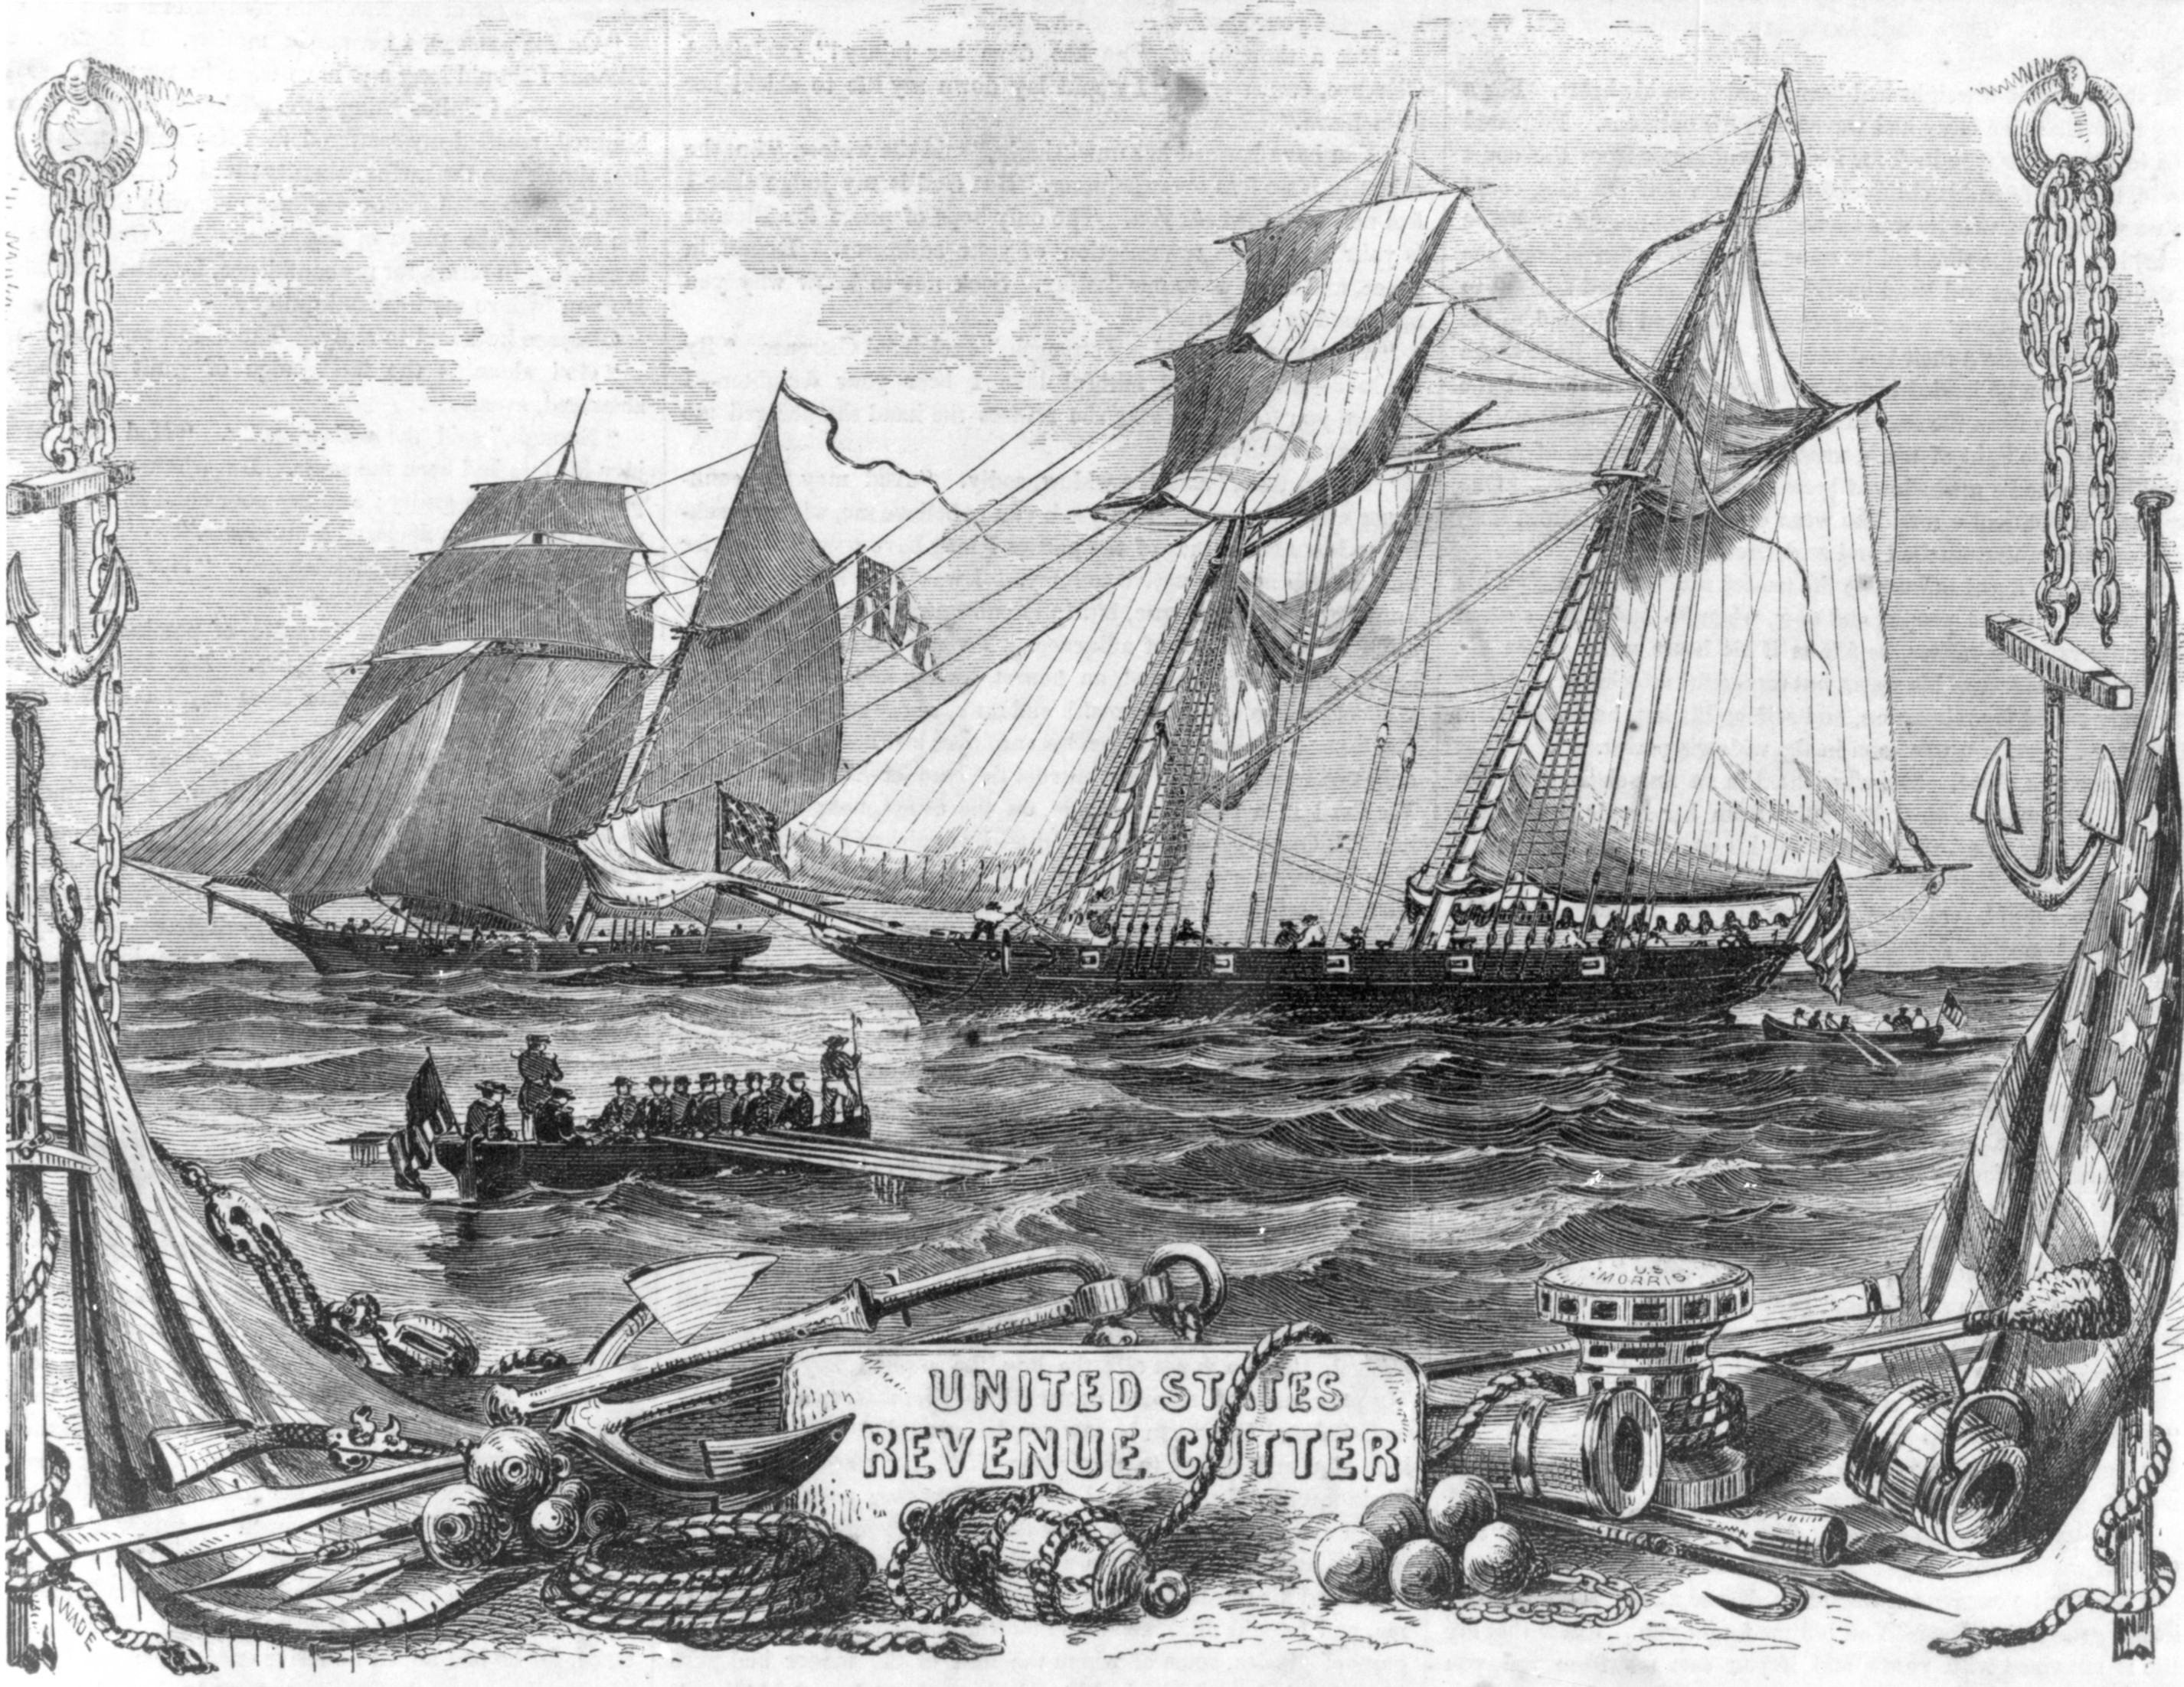 Engraving showing the Revenue Cutter Morris before her loss in the 1846 hurricane. (Source of engraving unknown)